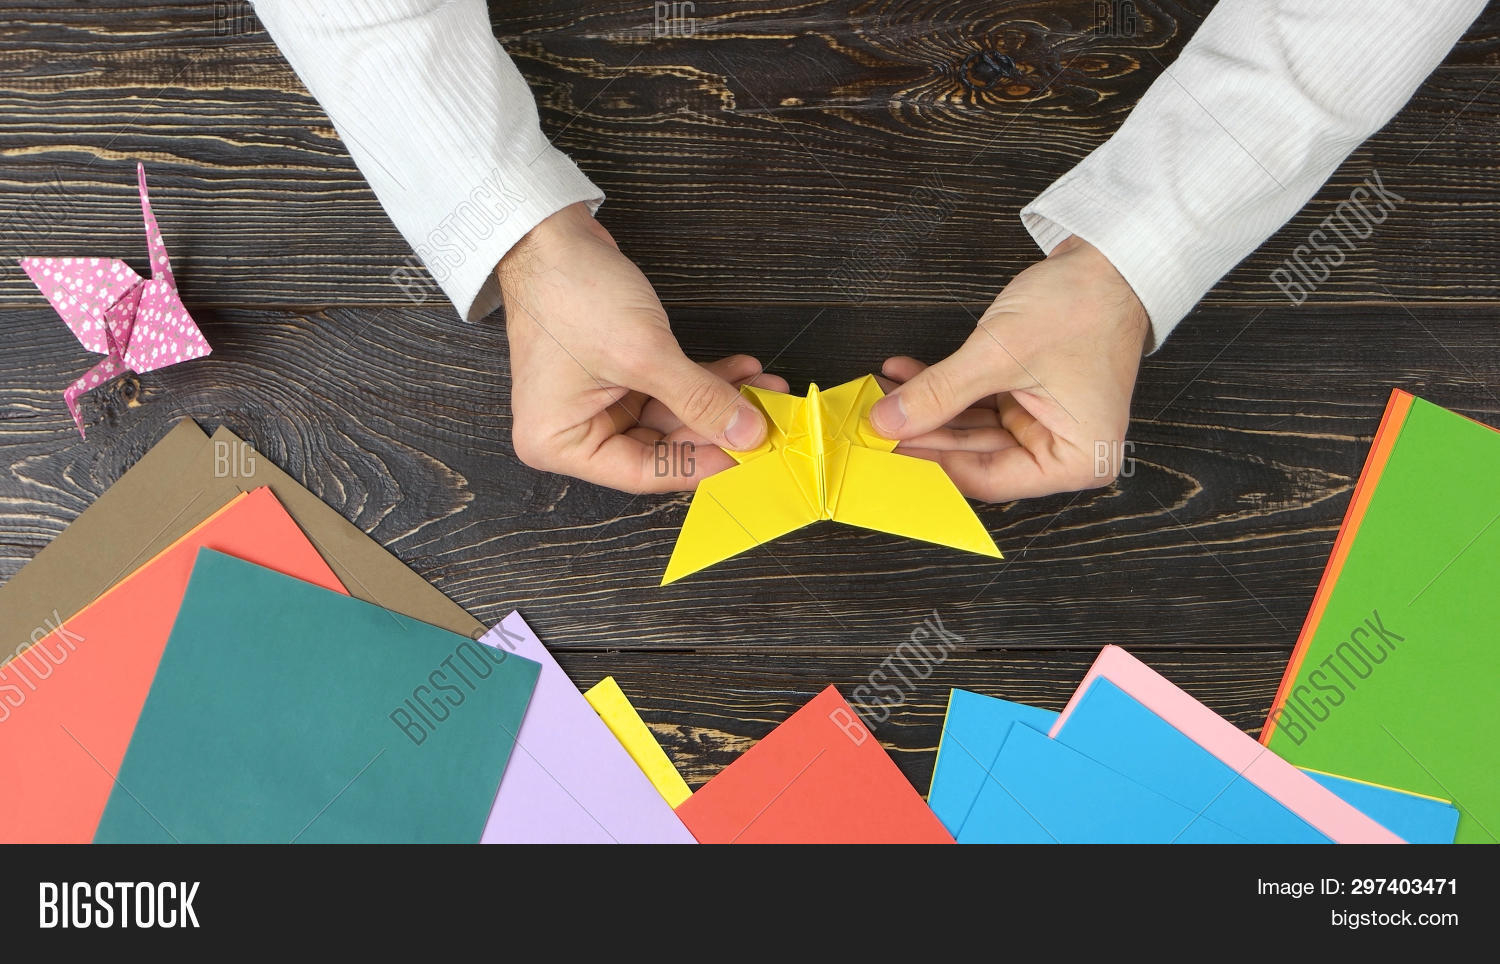 Make Easy Origami Butterfly Man Made Origami Image Photo Free Trial Bigstock